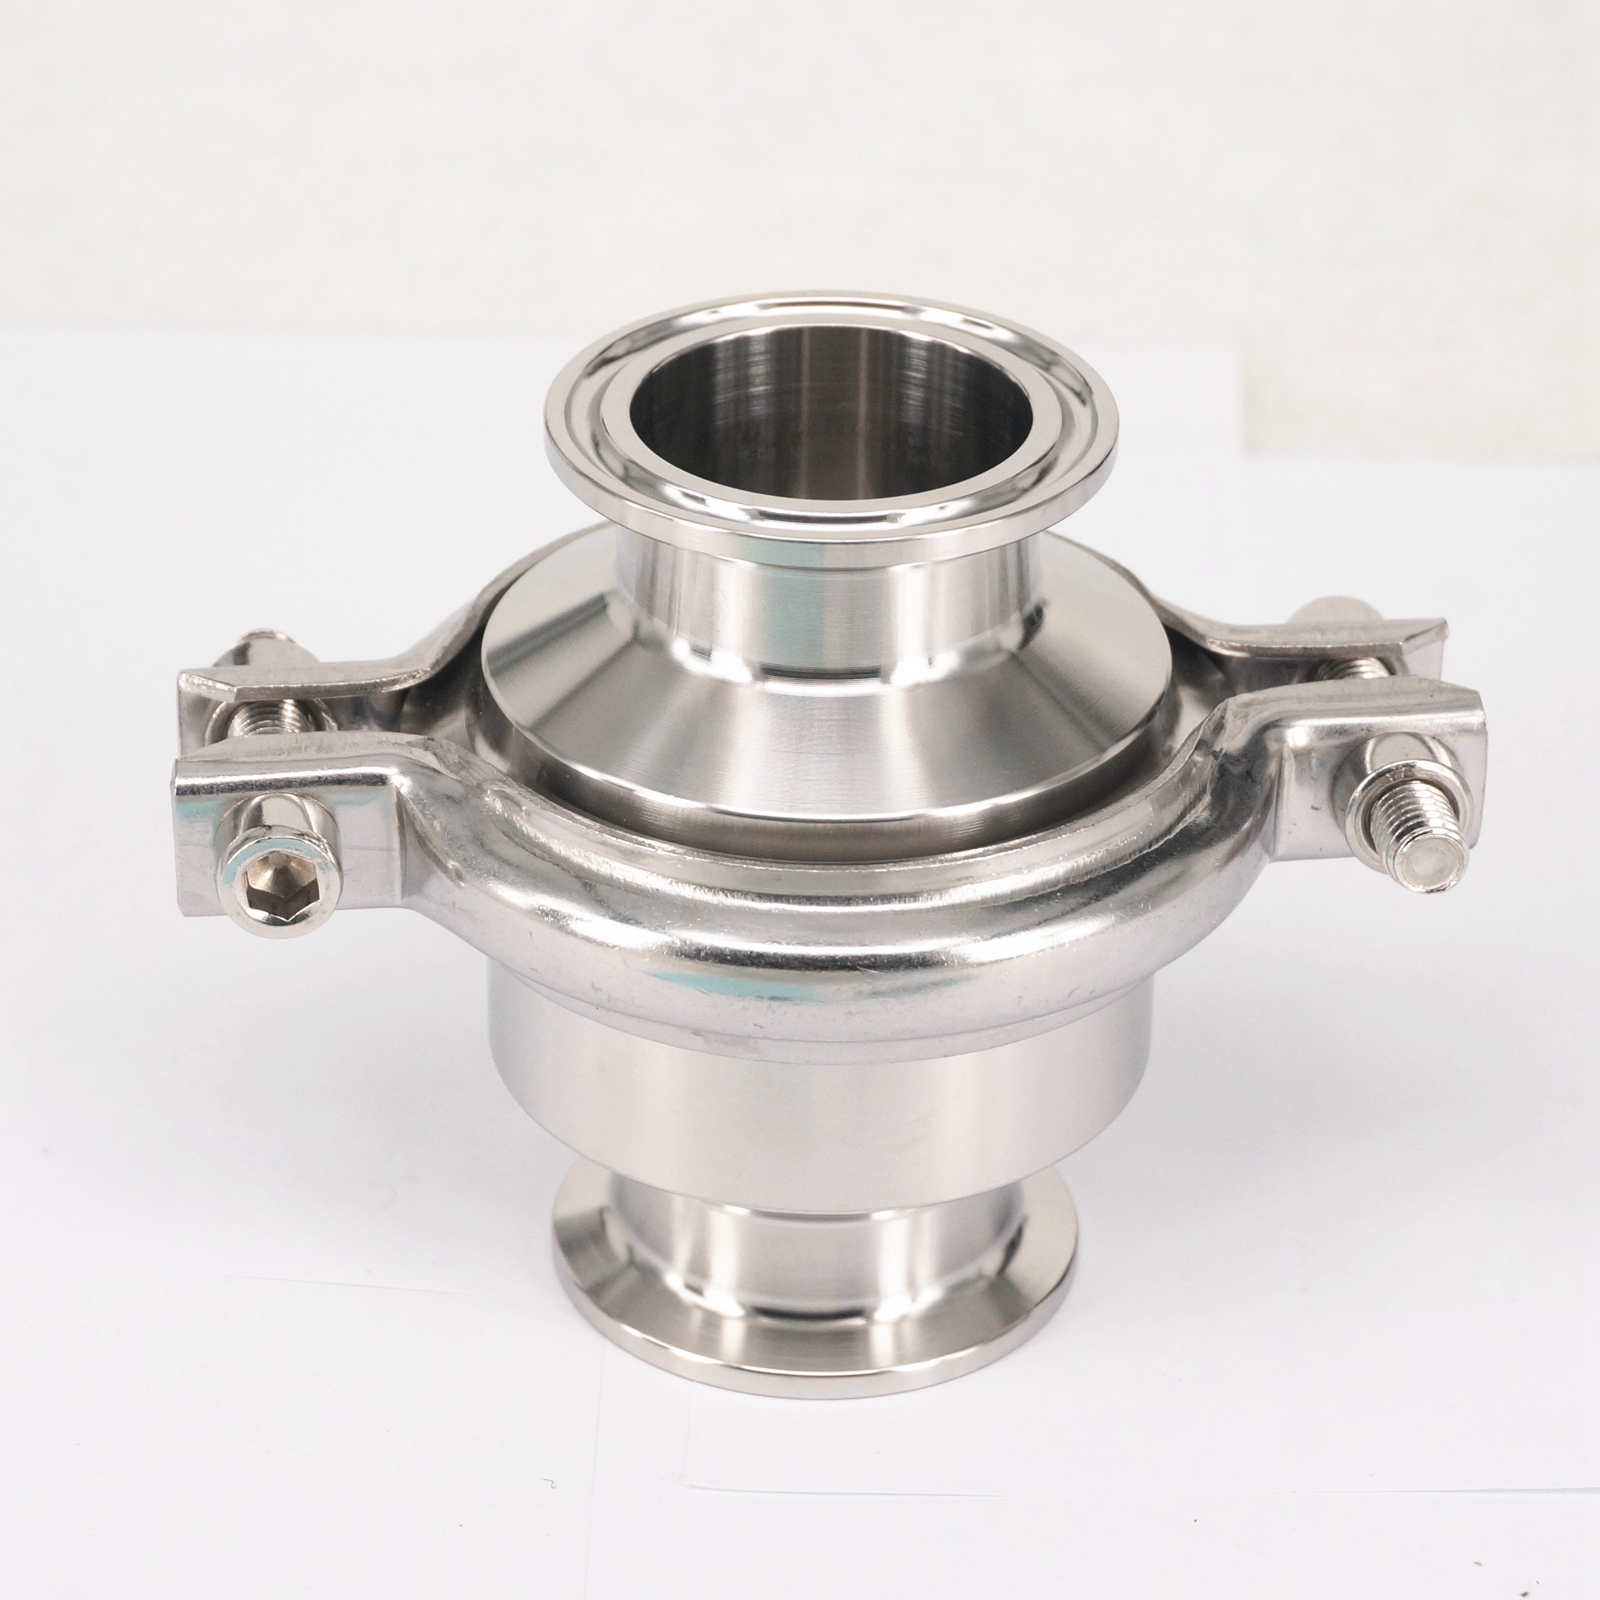 Fit 1-1/2 38mm Pipe OD 304 Stainless Steel Sanitary 1.5 Tri Clamp Check Valve One Way Non-return Home Brew Wine Beer 1 dn20 sanitary stainless steel ball valve 3 way 316 quick installed food grade manual clamp ball valve handle t port valve